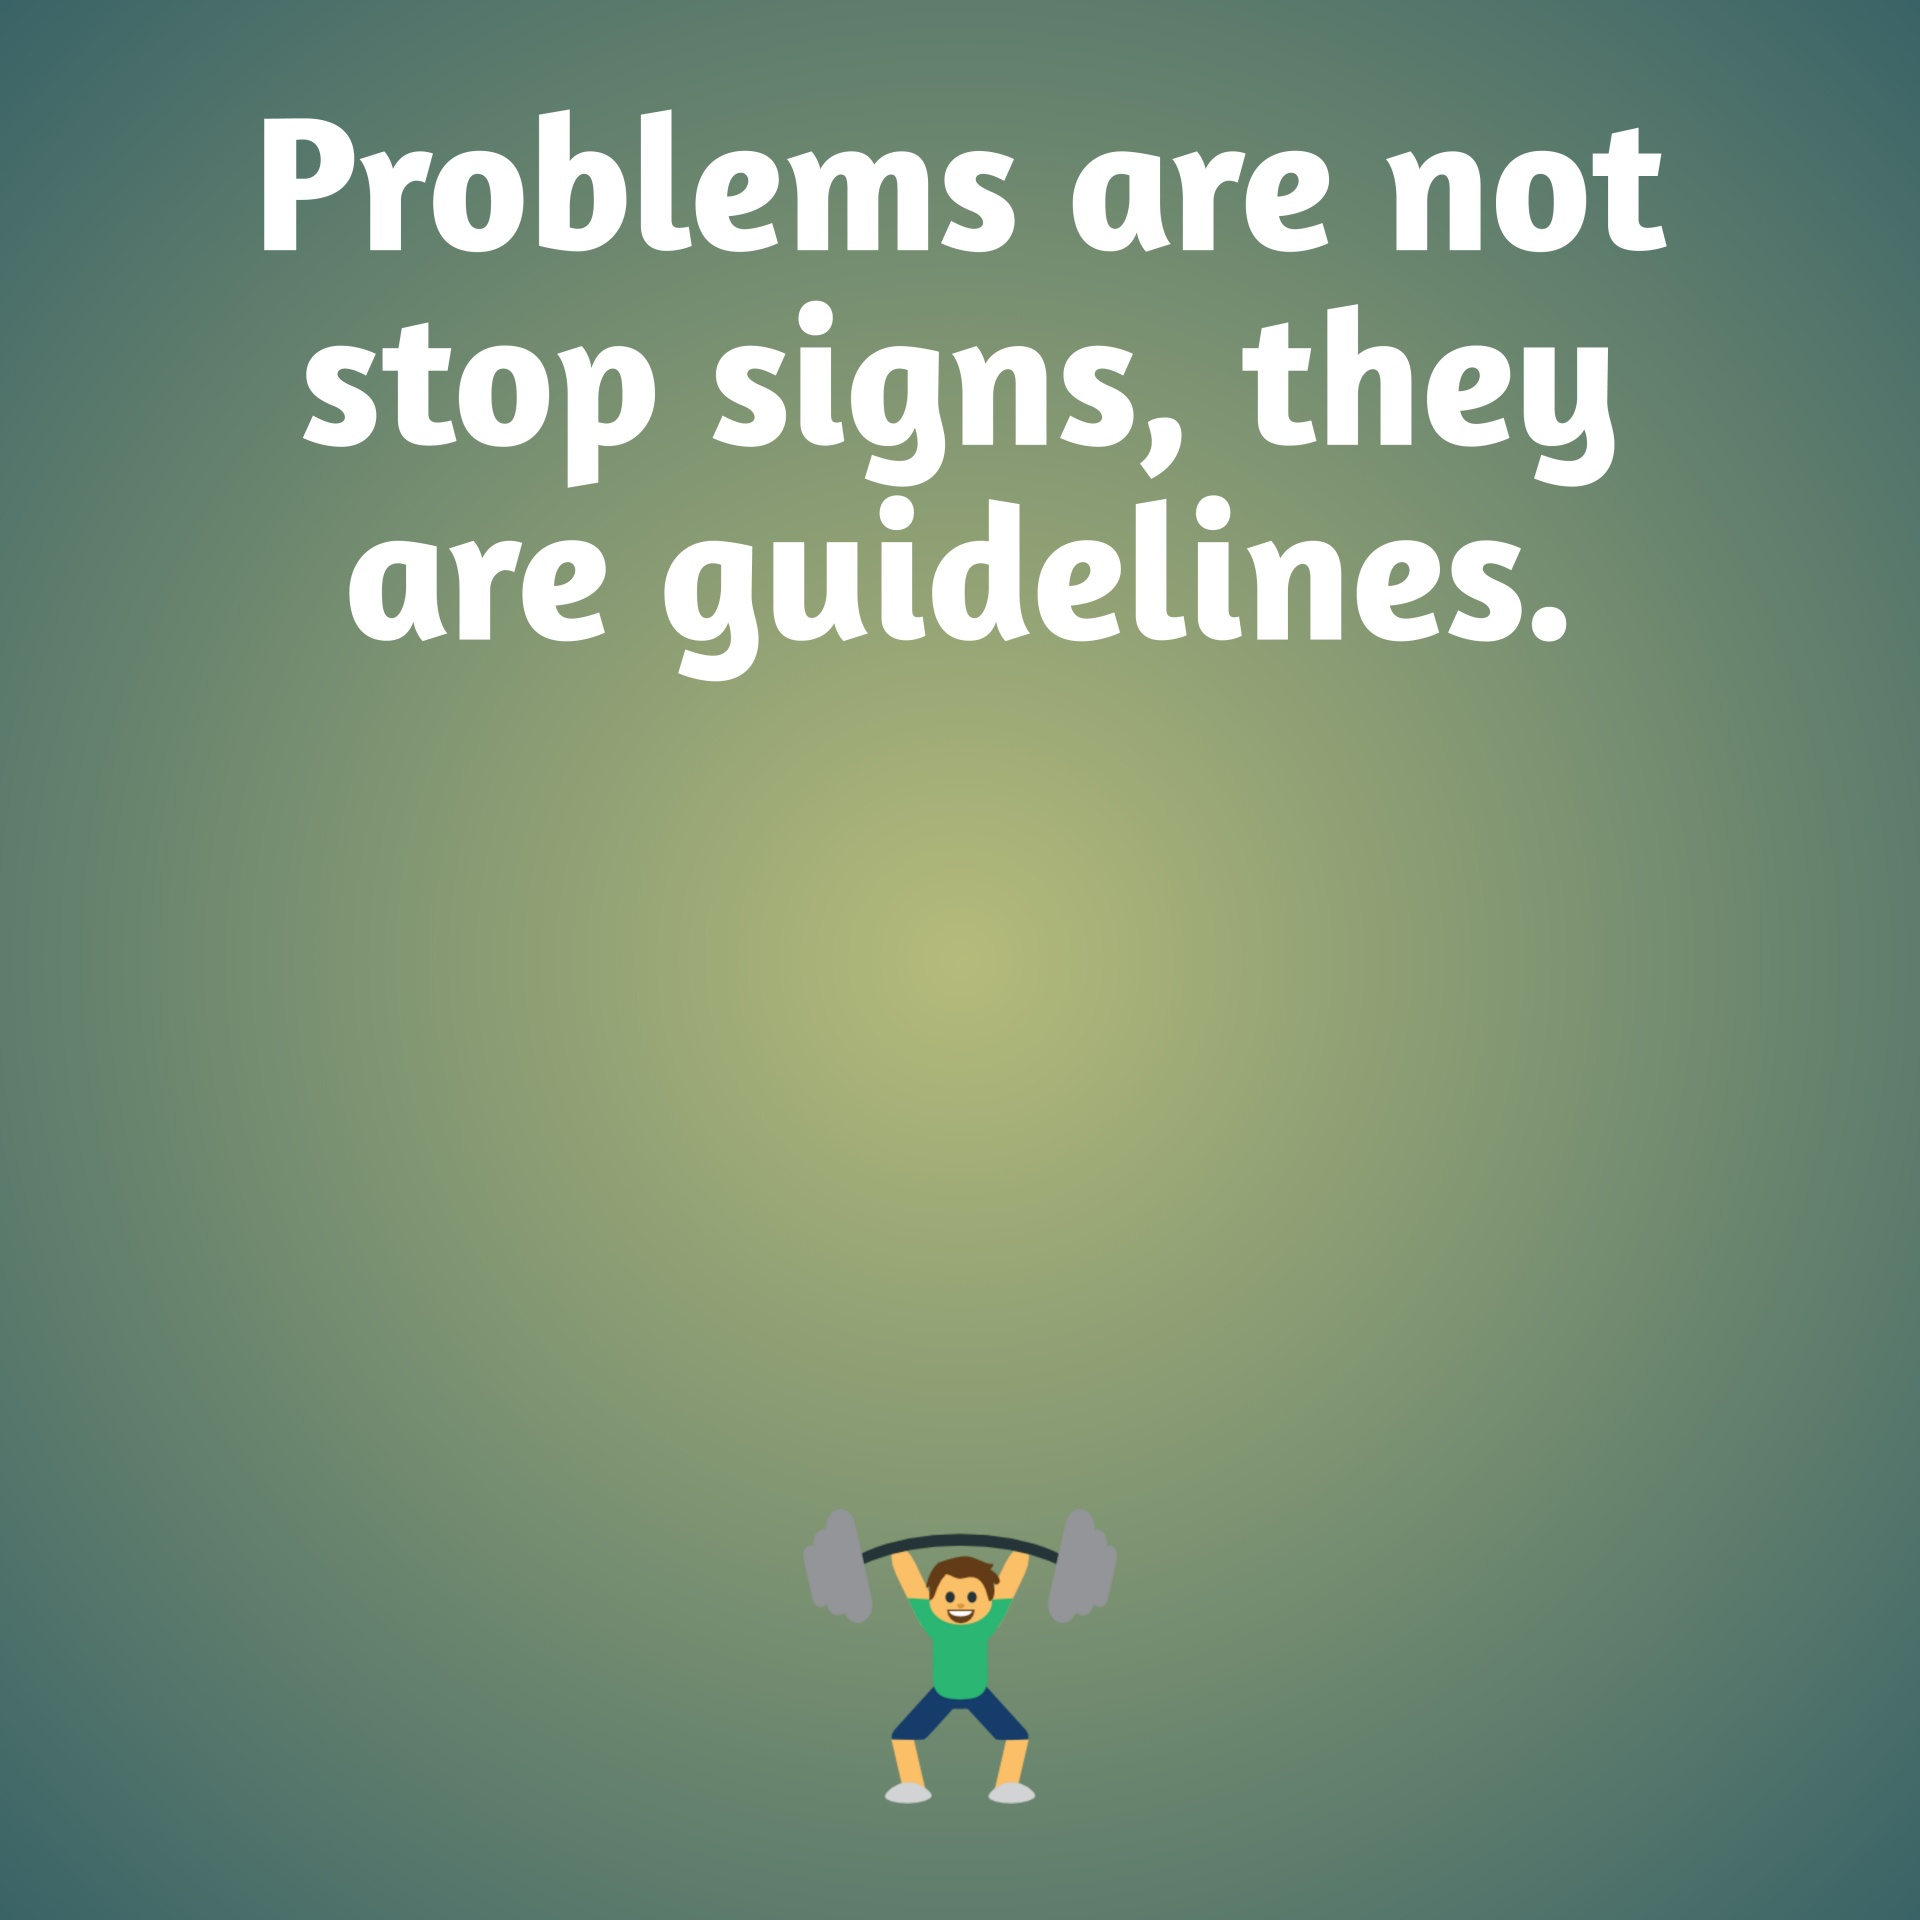 Popular Quotes | Popular Quotes Problems Stop Signs Free Image From Needpix Com